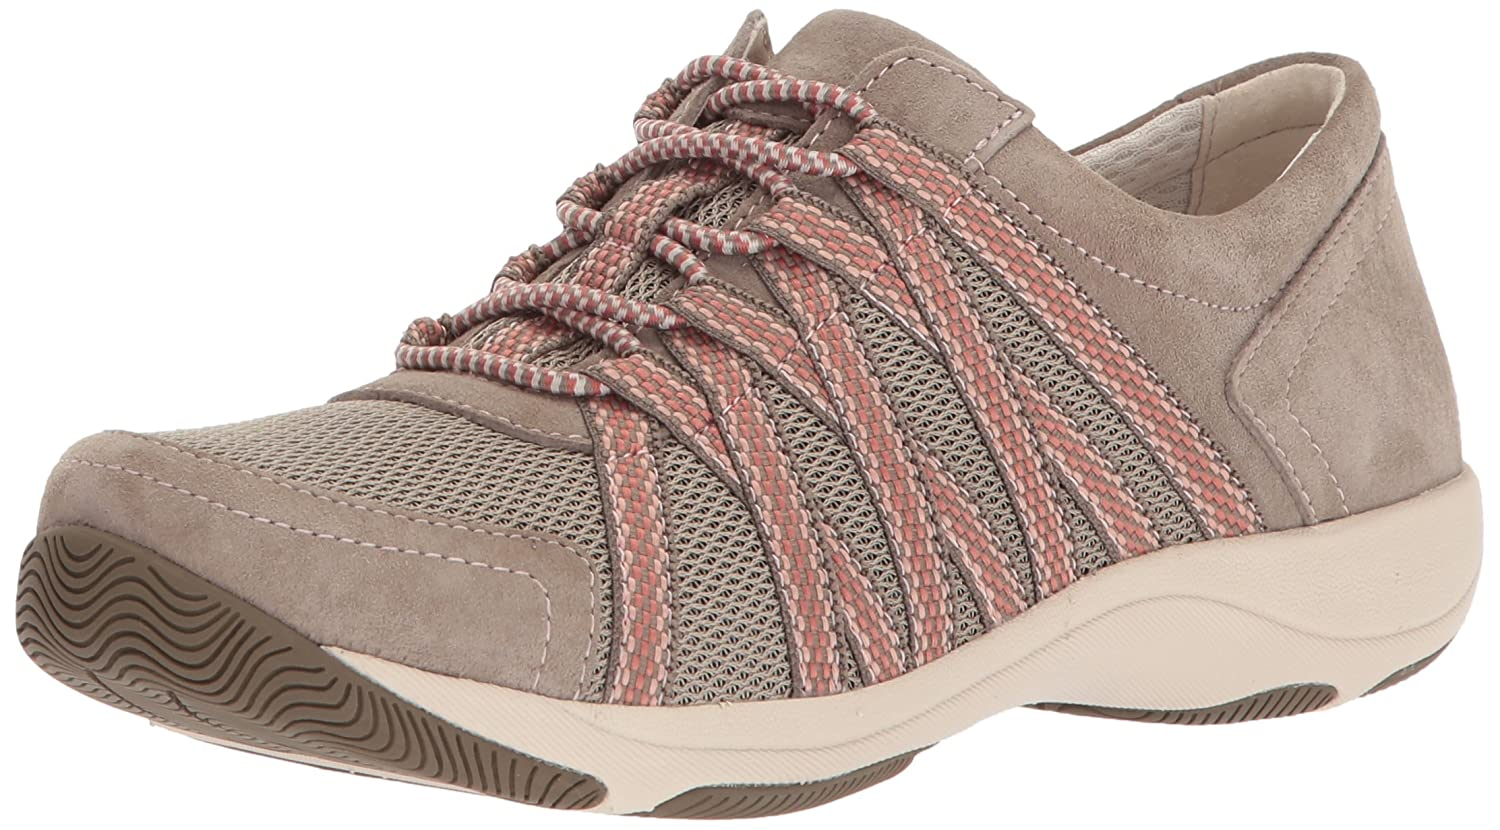 Dansko Women's Honor Sneaker B072XWWSB4 40 M EU (9.5-10 US)|Walnut Suede